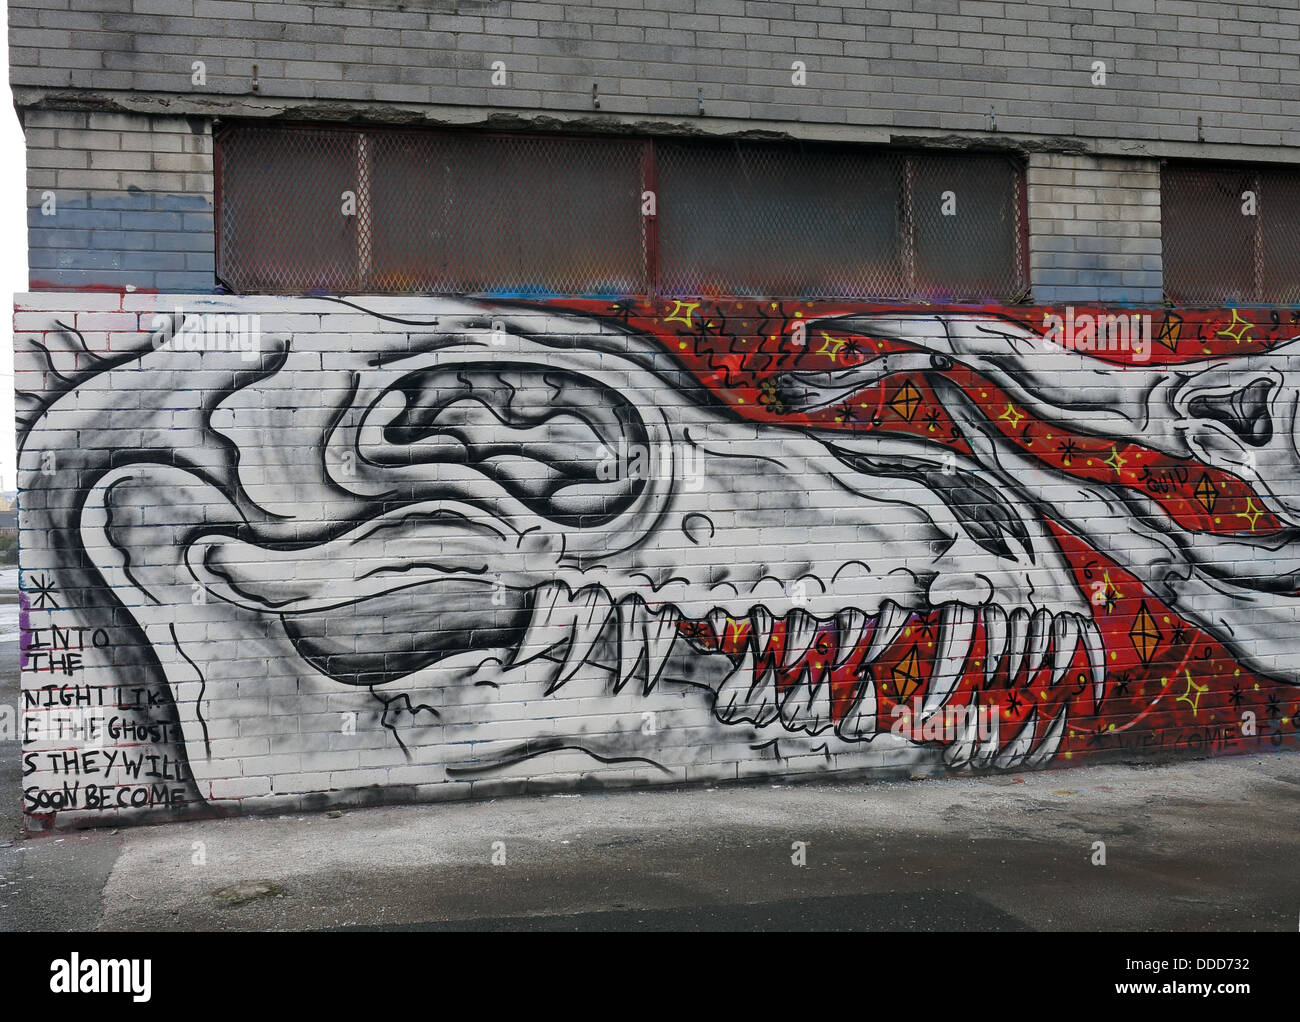 Graffiti on empty office buildings, Upper Parliament Street, Liverpool, Merseyside, North West England, UK - Stock Image